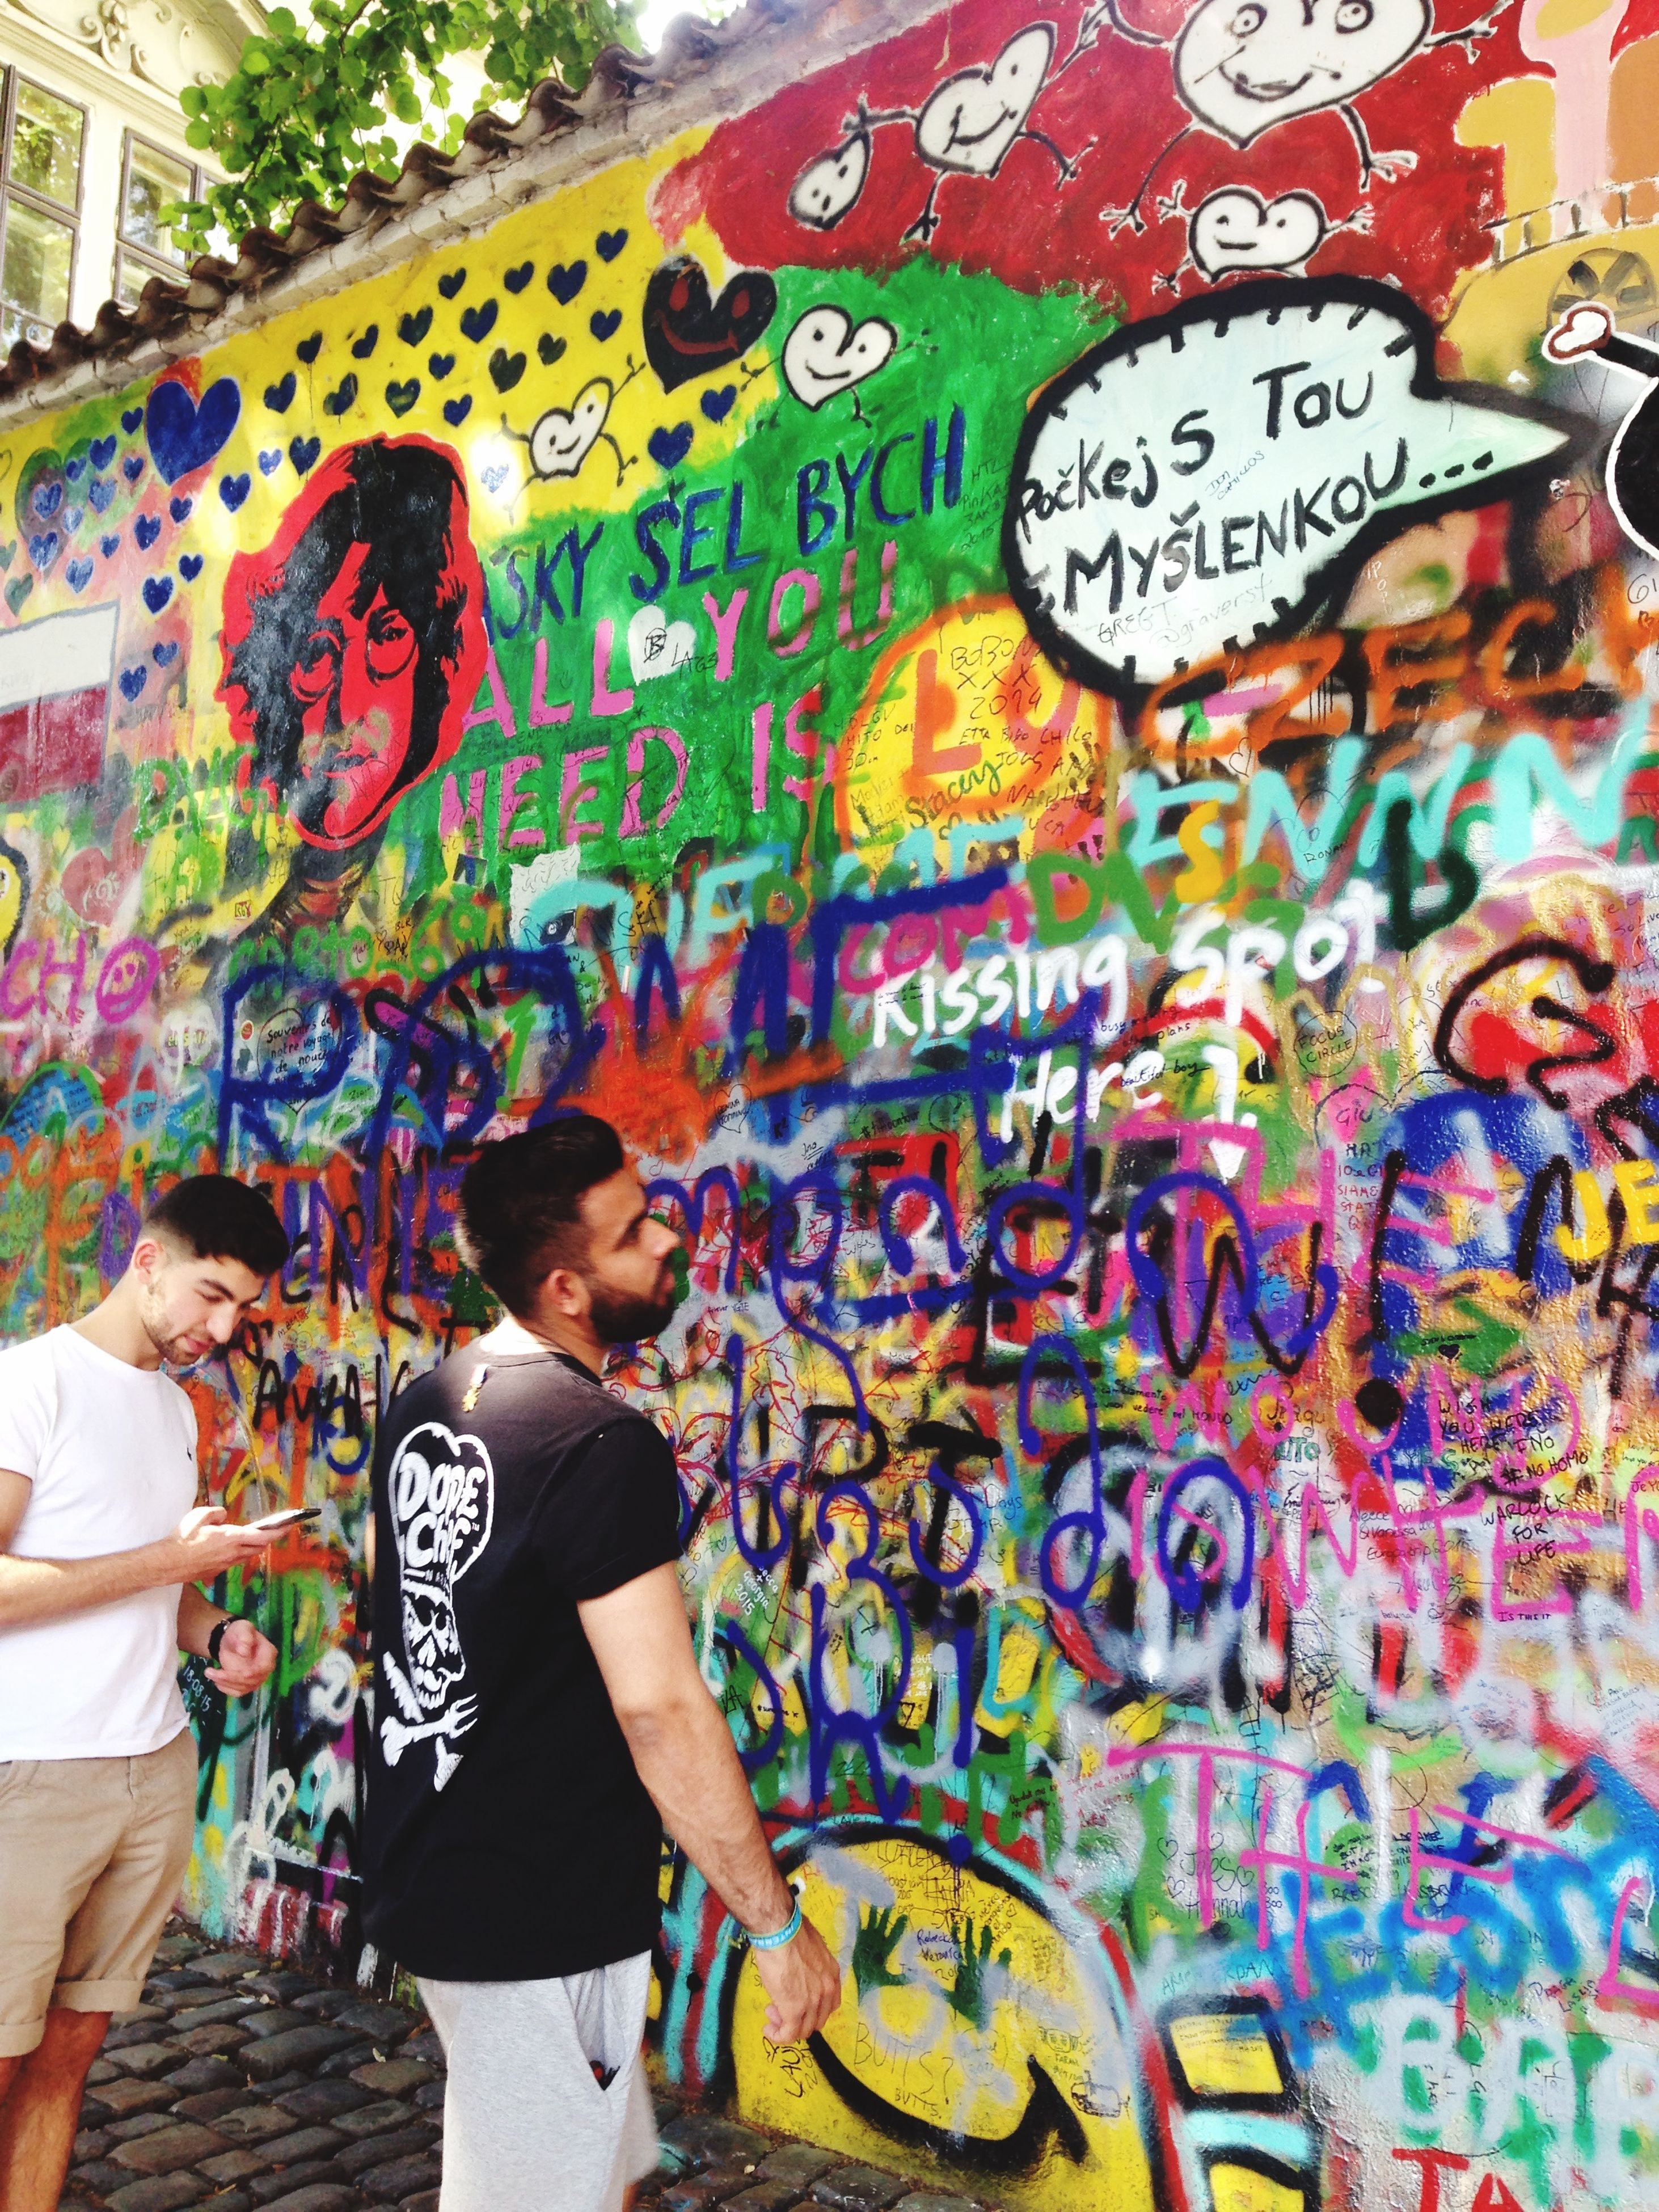 graffiti, art, wall - building feature, creativity, multi colored, art and craft, lifestyles, casual clothing, leisure activity, standing, wall, text, painting, indoors, built structure, architecture, street art, front view